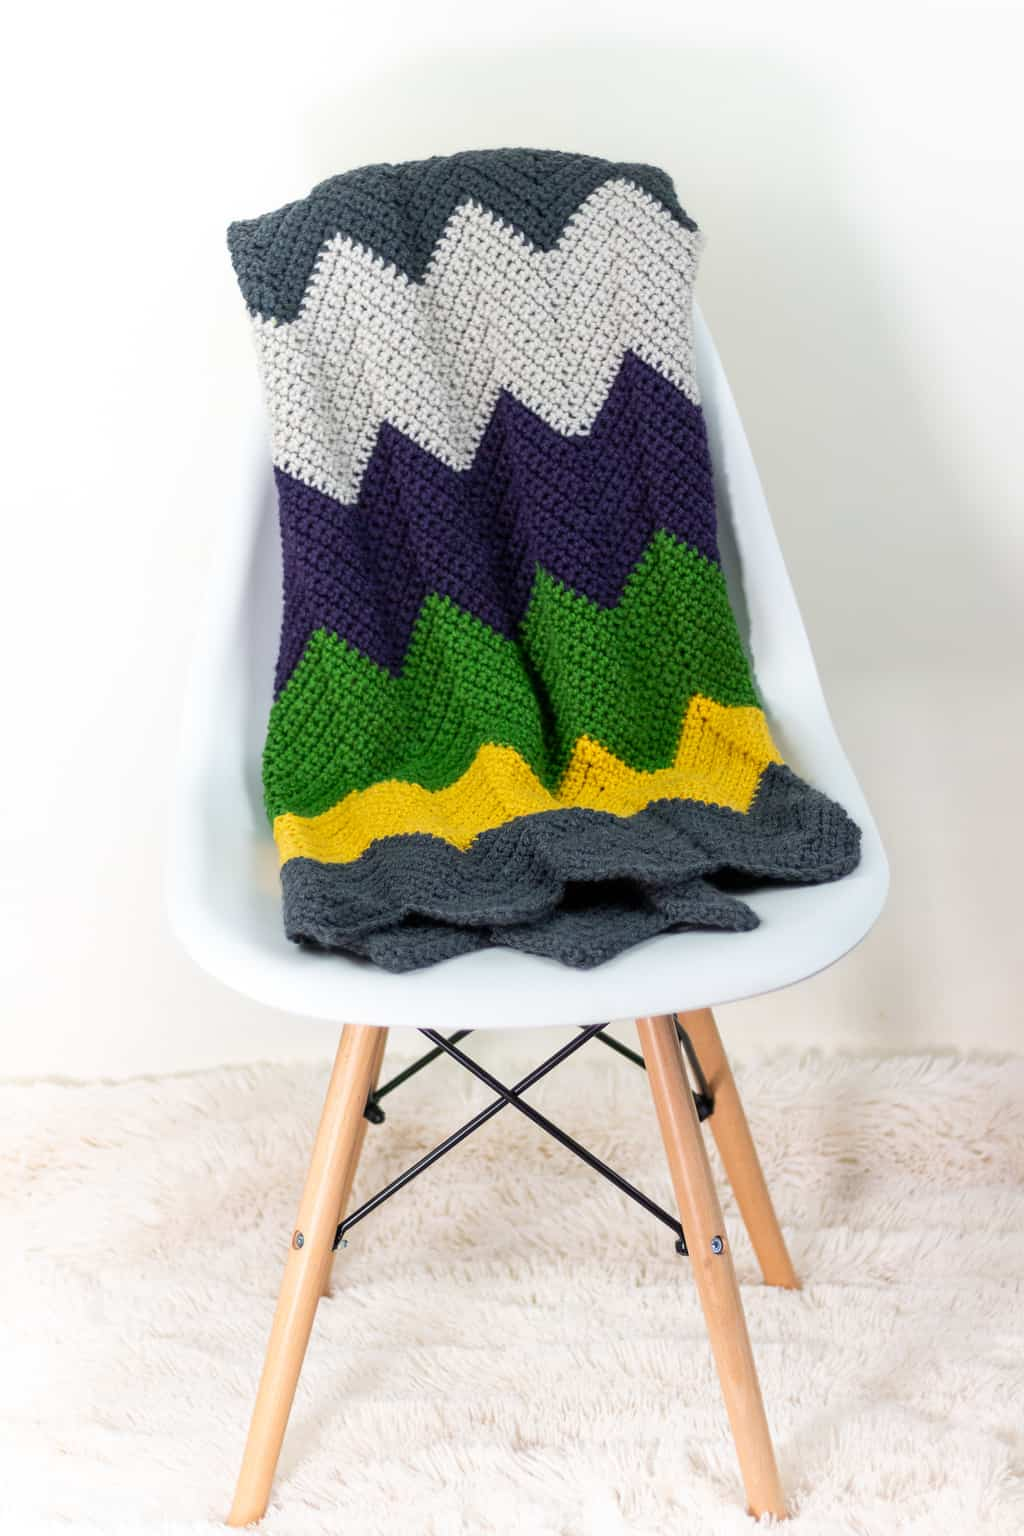 Chevron Crochet Afghan Pattern